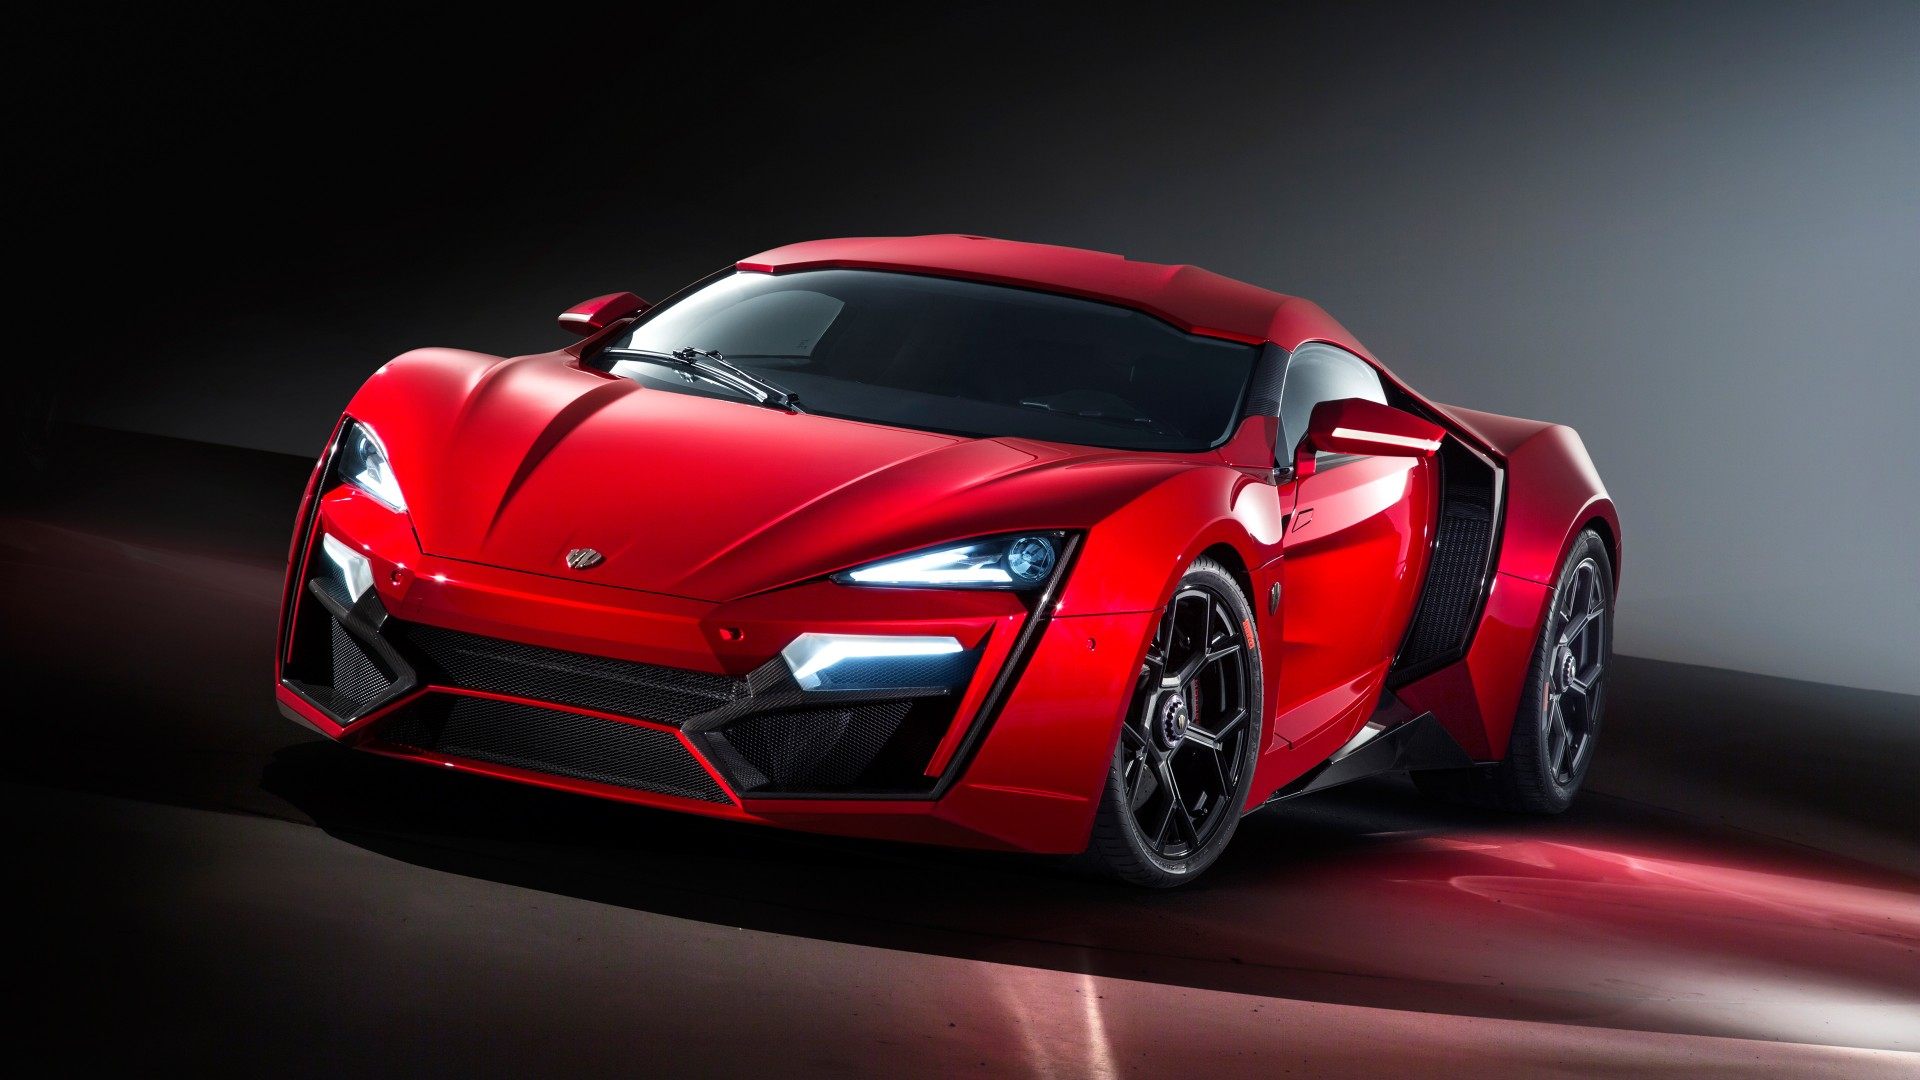 2017 W Motors Lykan Hypersport Wallpaper Hd Car